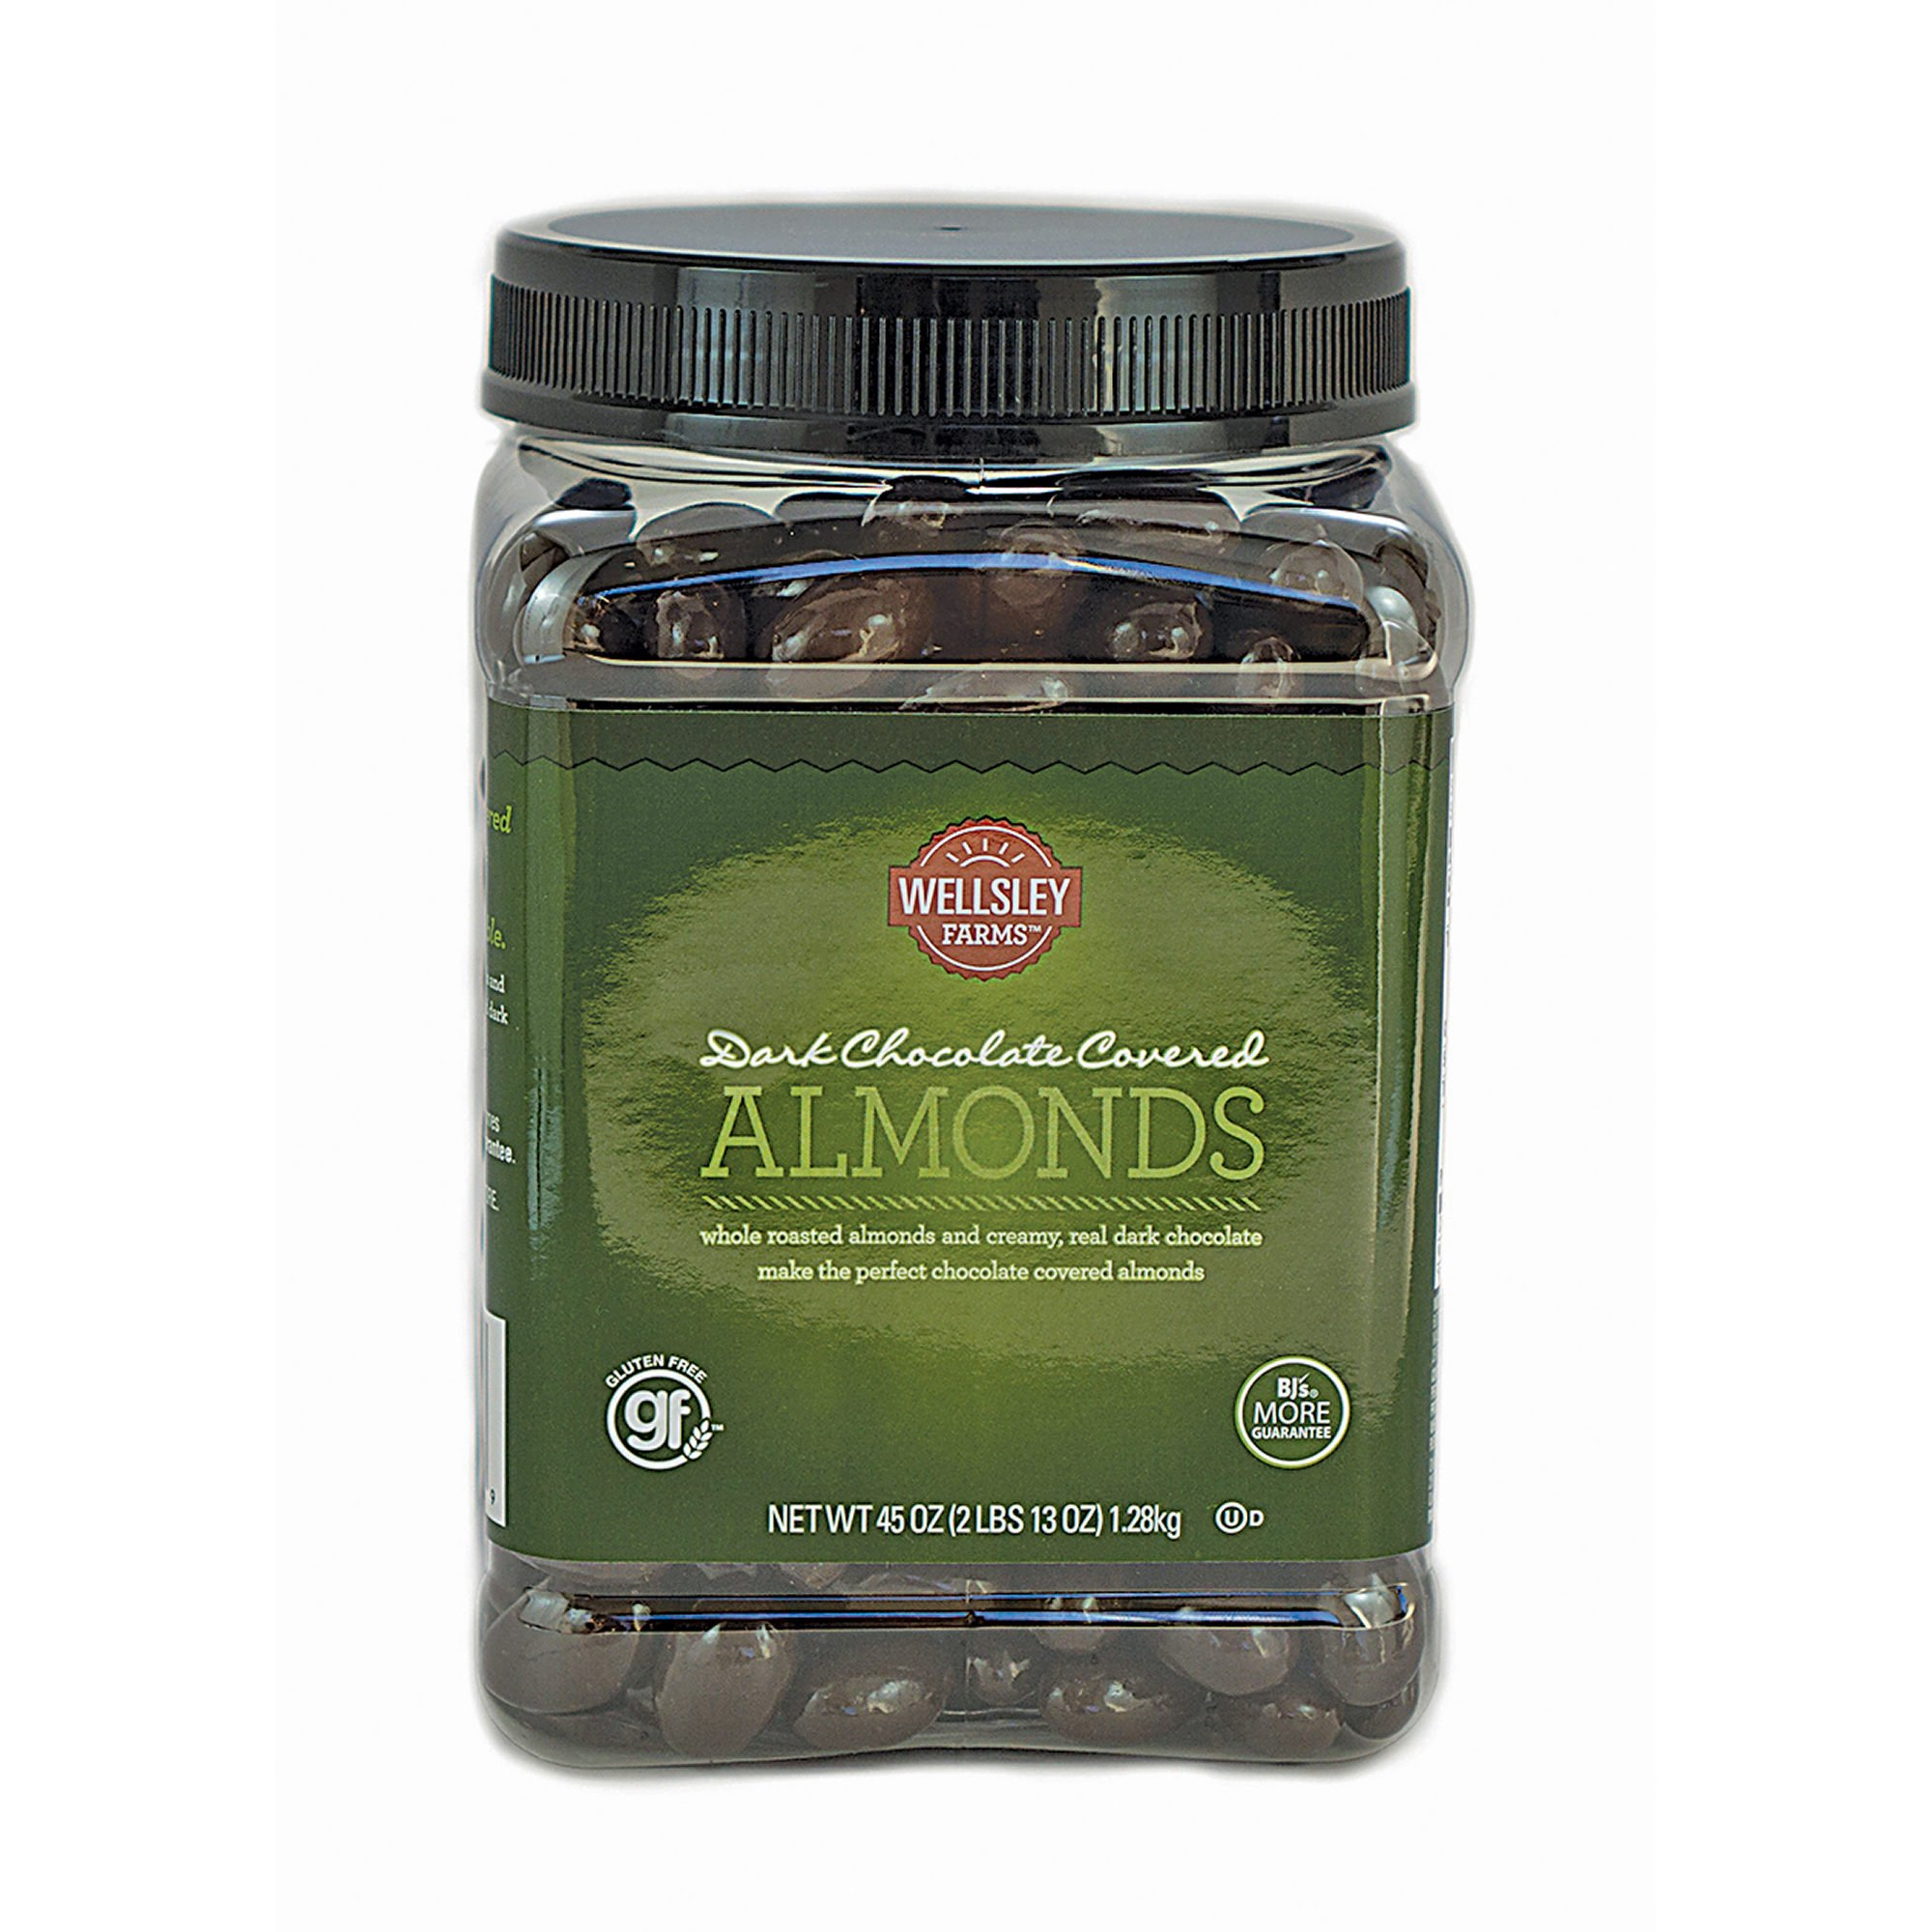 Wellsley Farms Dark Chocolate Covered Almonds, 45 oz. (pack of 6)